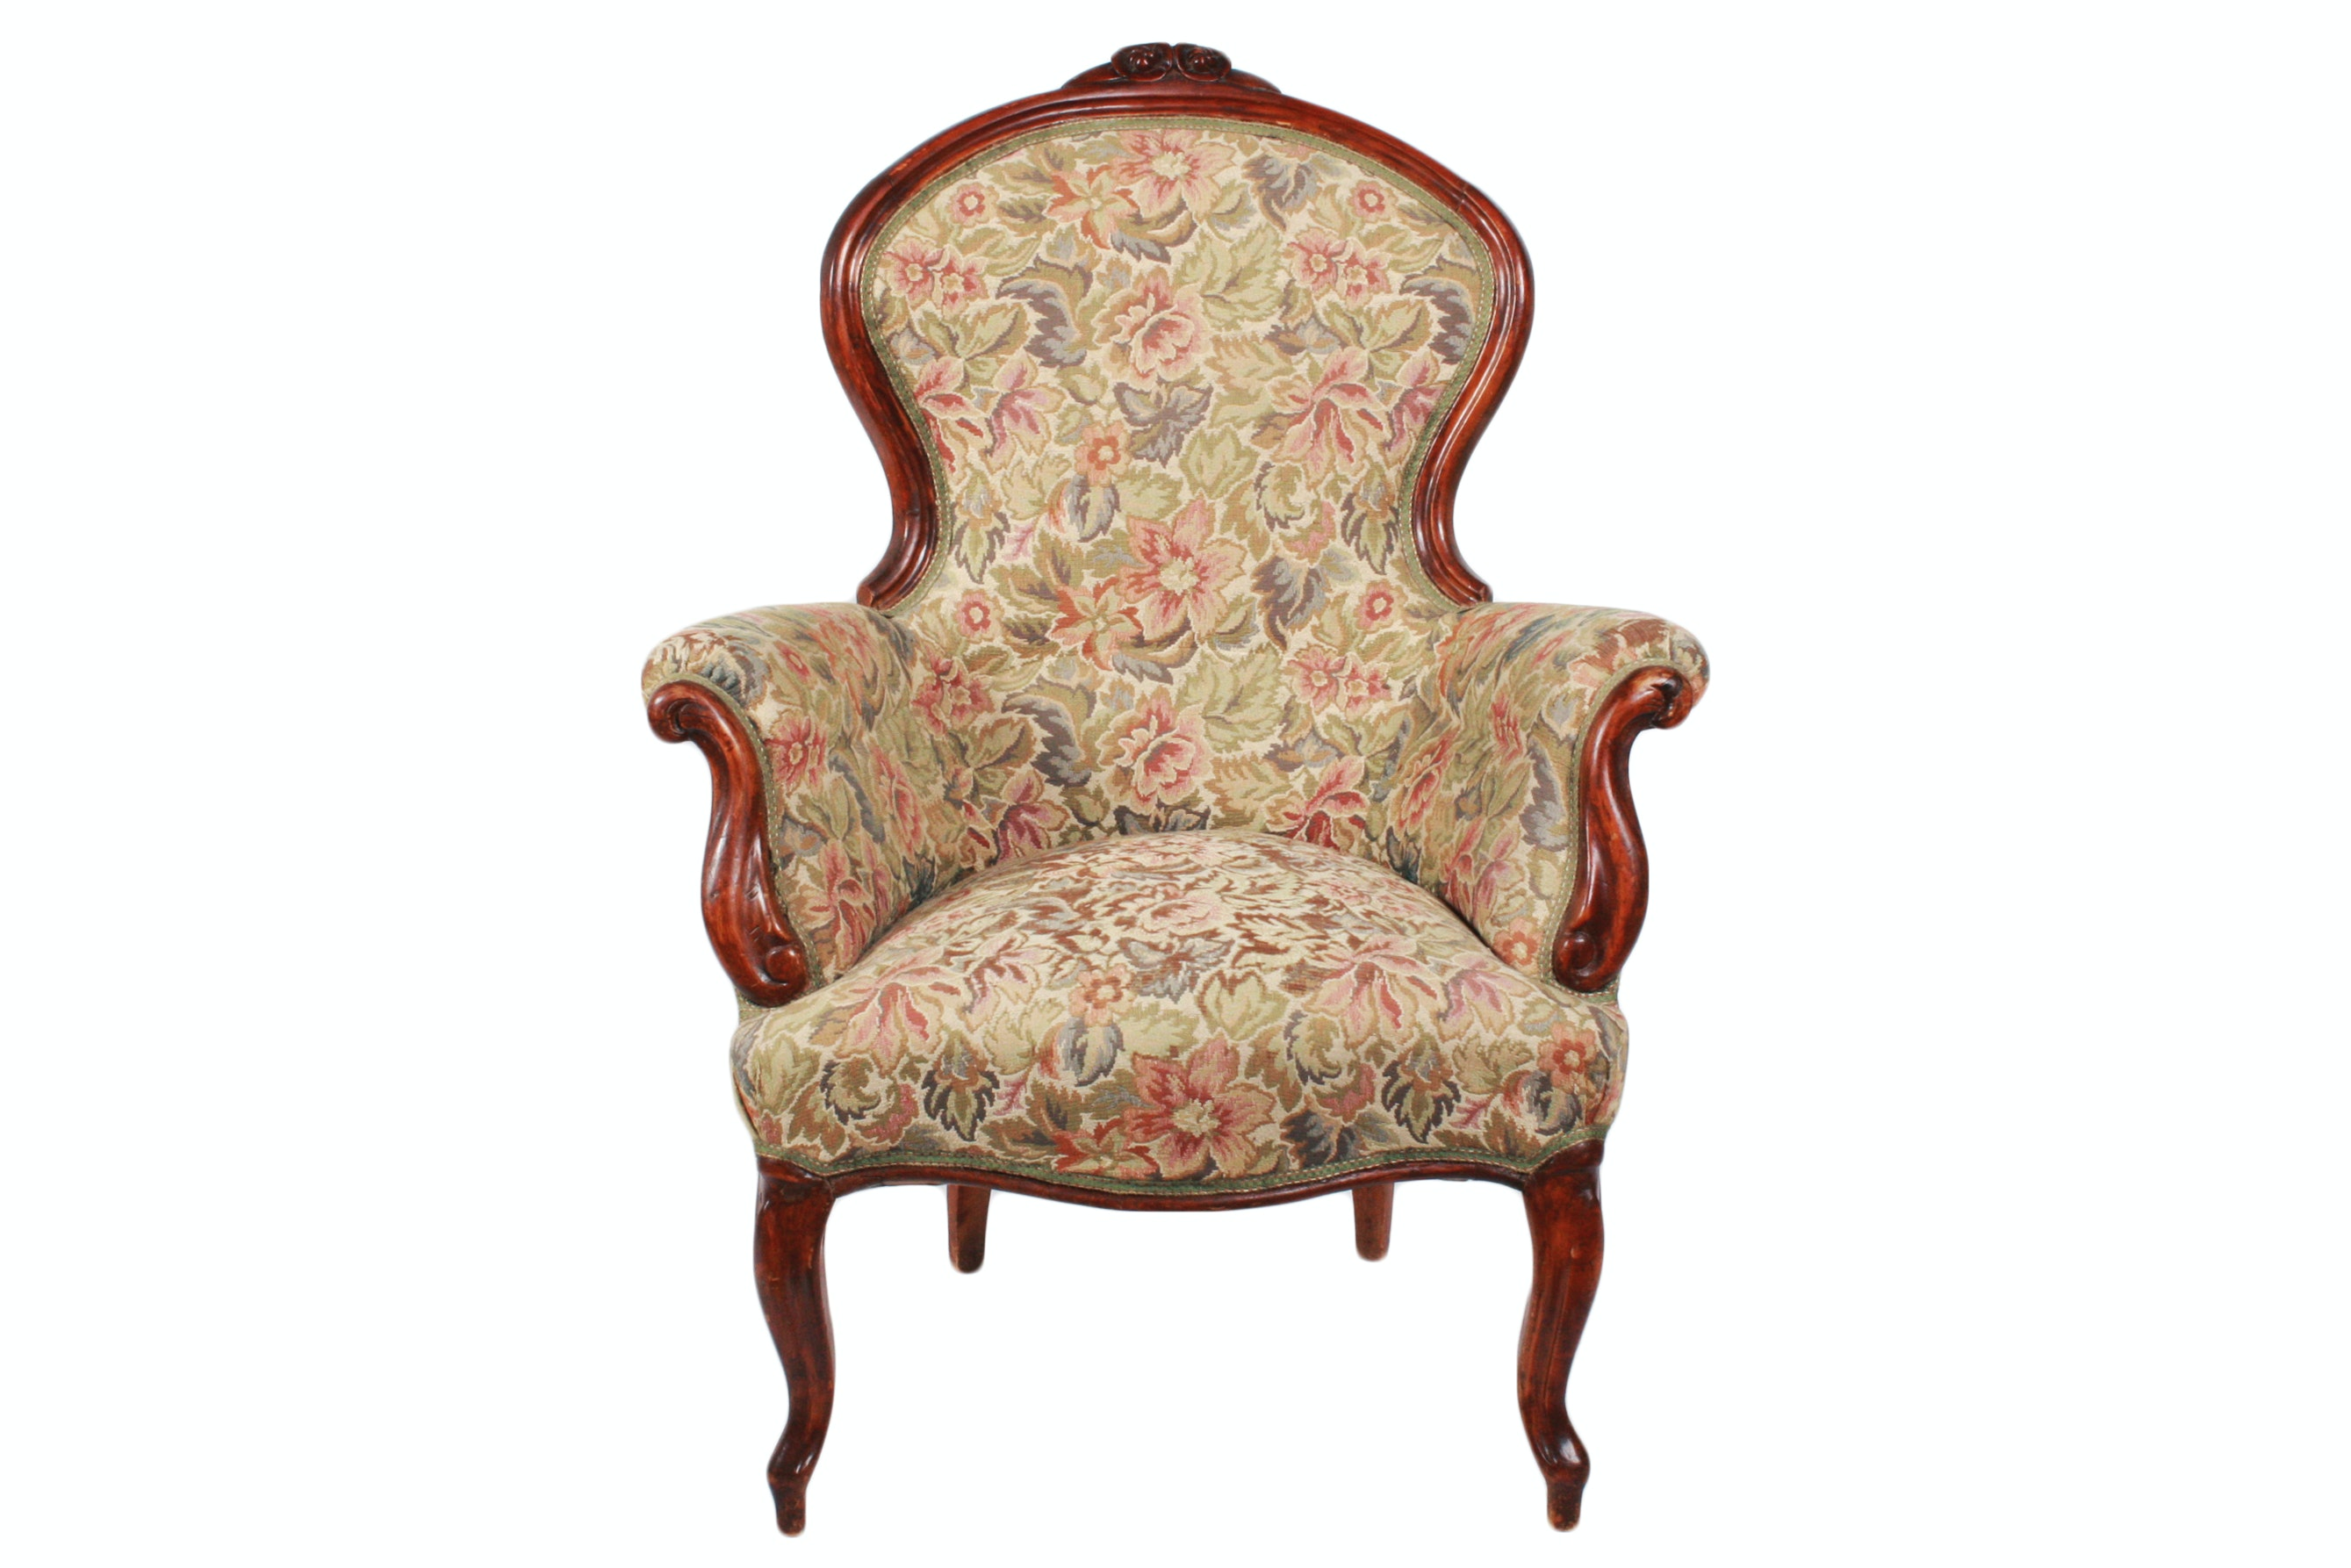 Antique Victorian Mahogany Upholstered Parlor Chair